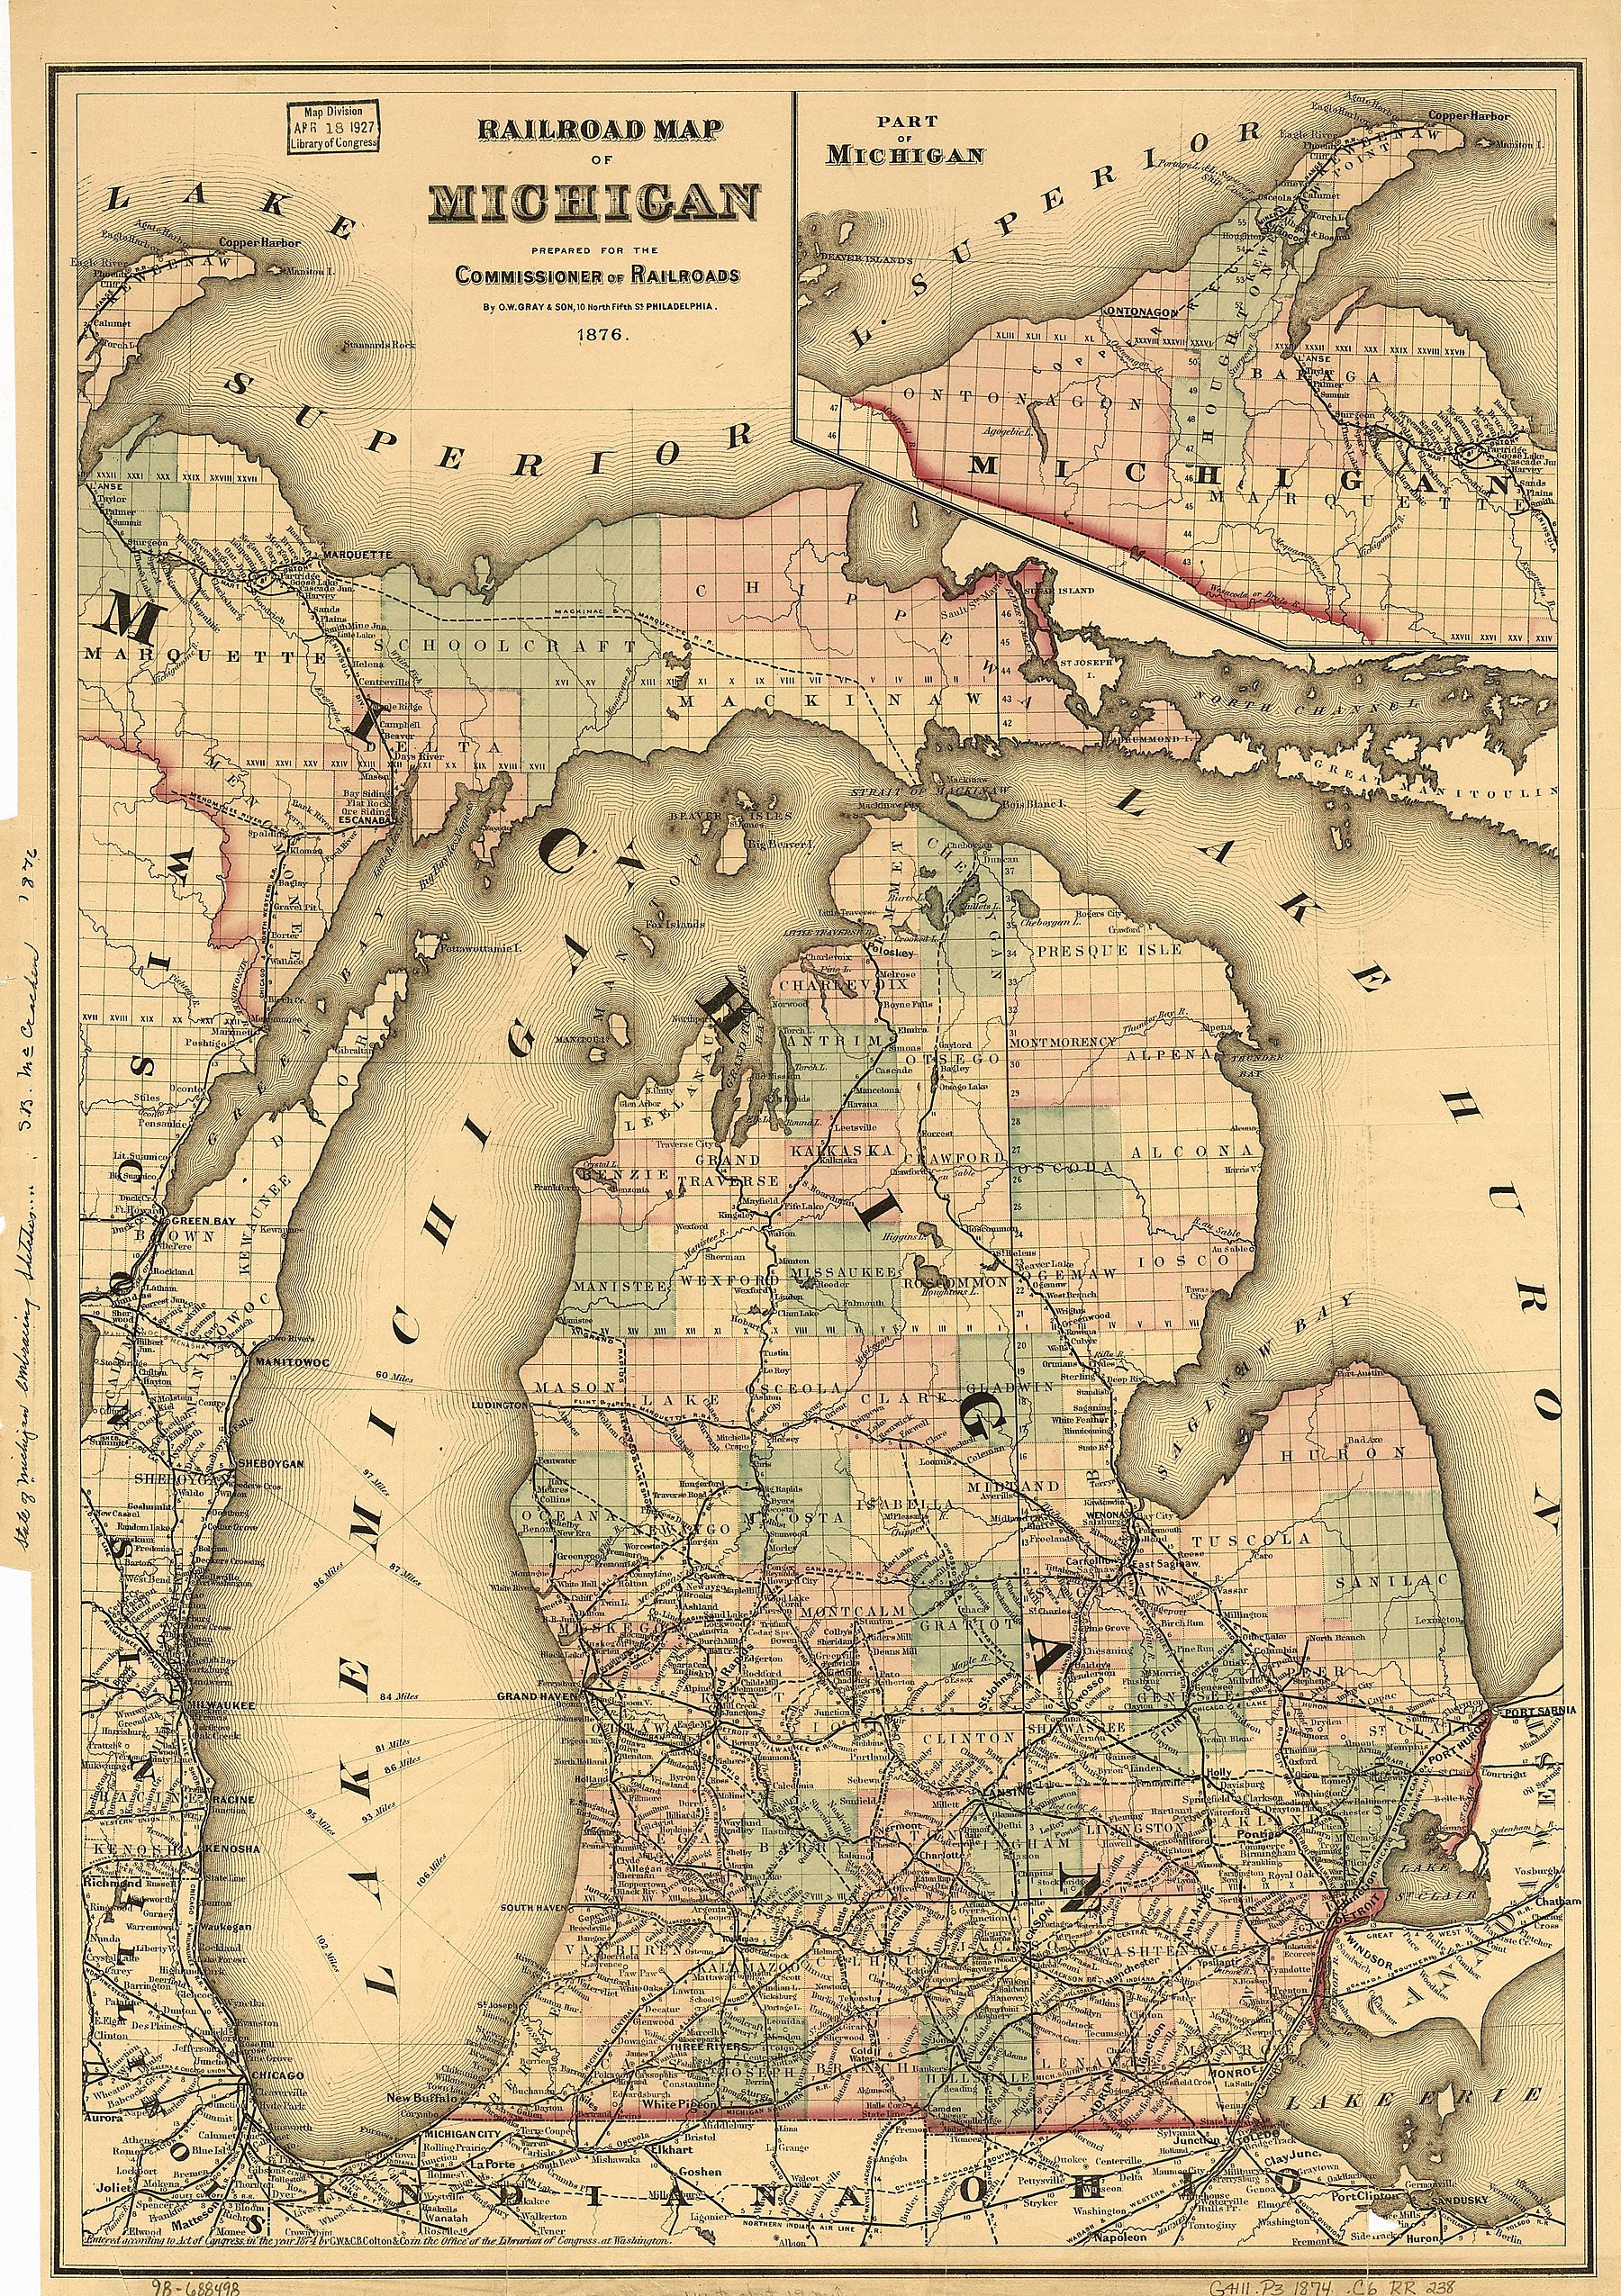 Charlevoix became the county seat in 1869 when Charlevoix County was formed, but by 1876, the Grand Rapids and Indiana Railroad had built a line north to Petoskey with stops in Boyne Falls and Melrose. This link to cities in lower Michigan brought increased population to Charlevoix County, and new political power to the eastern part of the county.